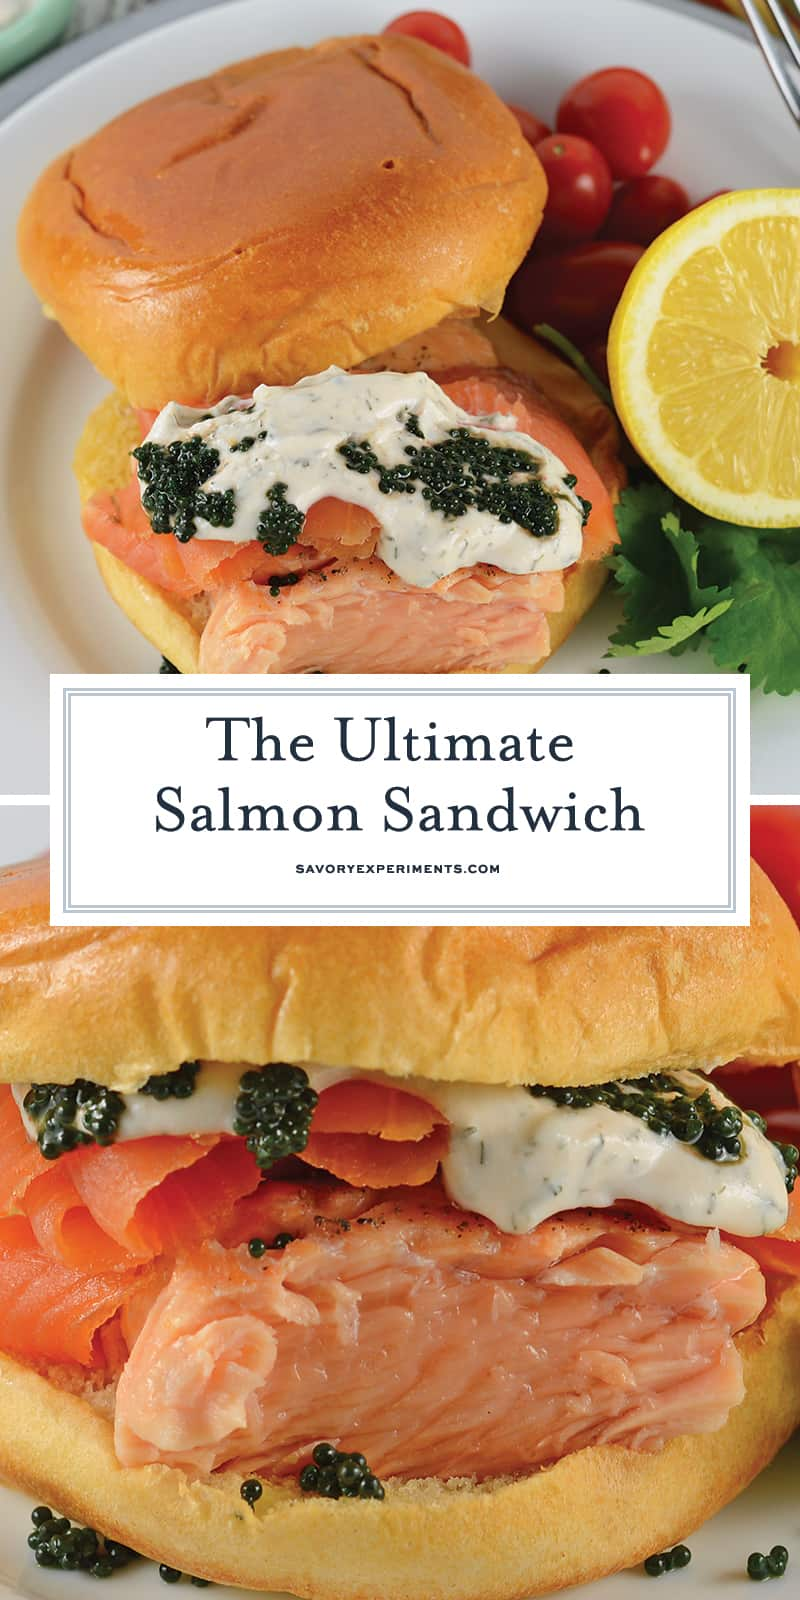 The Ultimate Salmon Sandwich is THE BEST salmon sandwich because it uses 2 types of salmon with dilled sour cream & caviar on a delicious buttery brioche roll! #salmonrecipes #salmonsandwichrecipe www.savoryexperiments.com